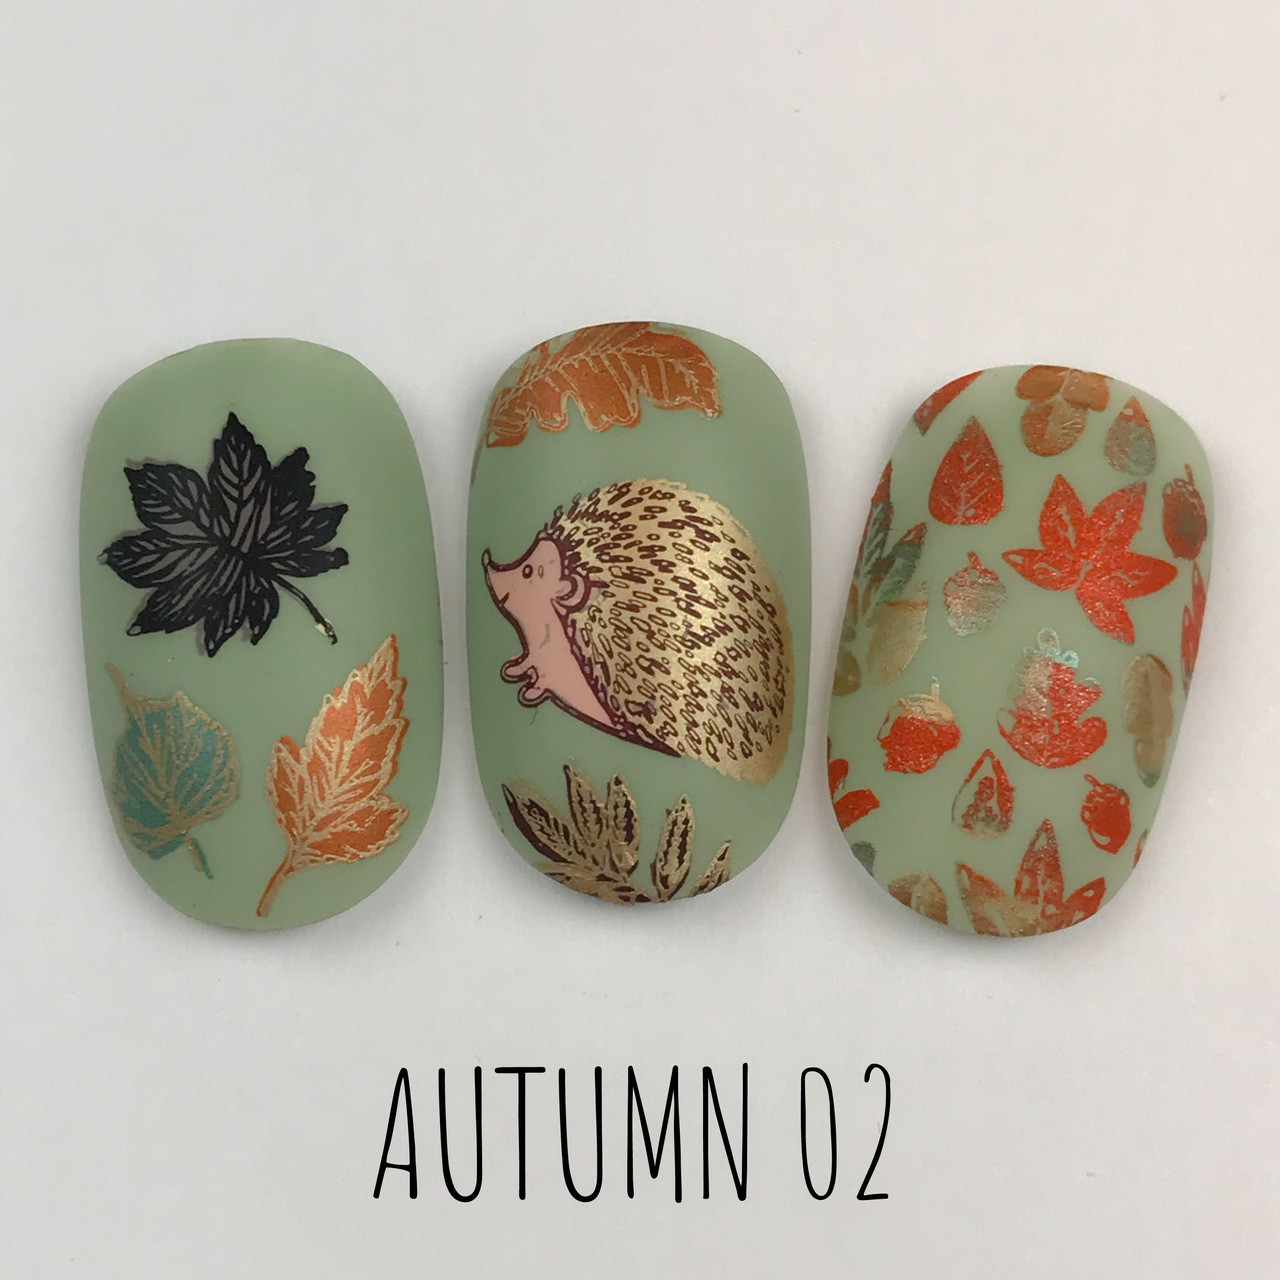 Dixie Plates Autumn 02 nail stamping plate. Available at www.lanternandwren.com.